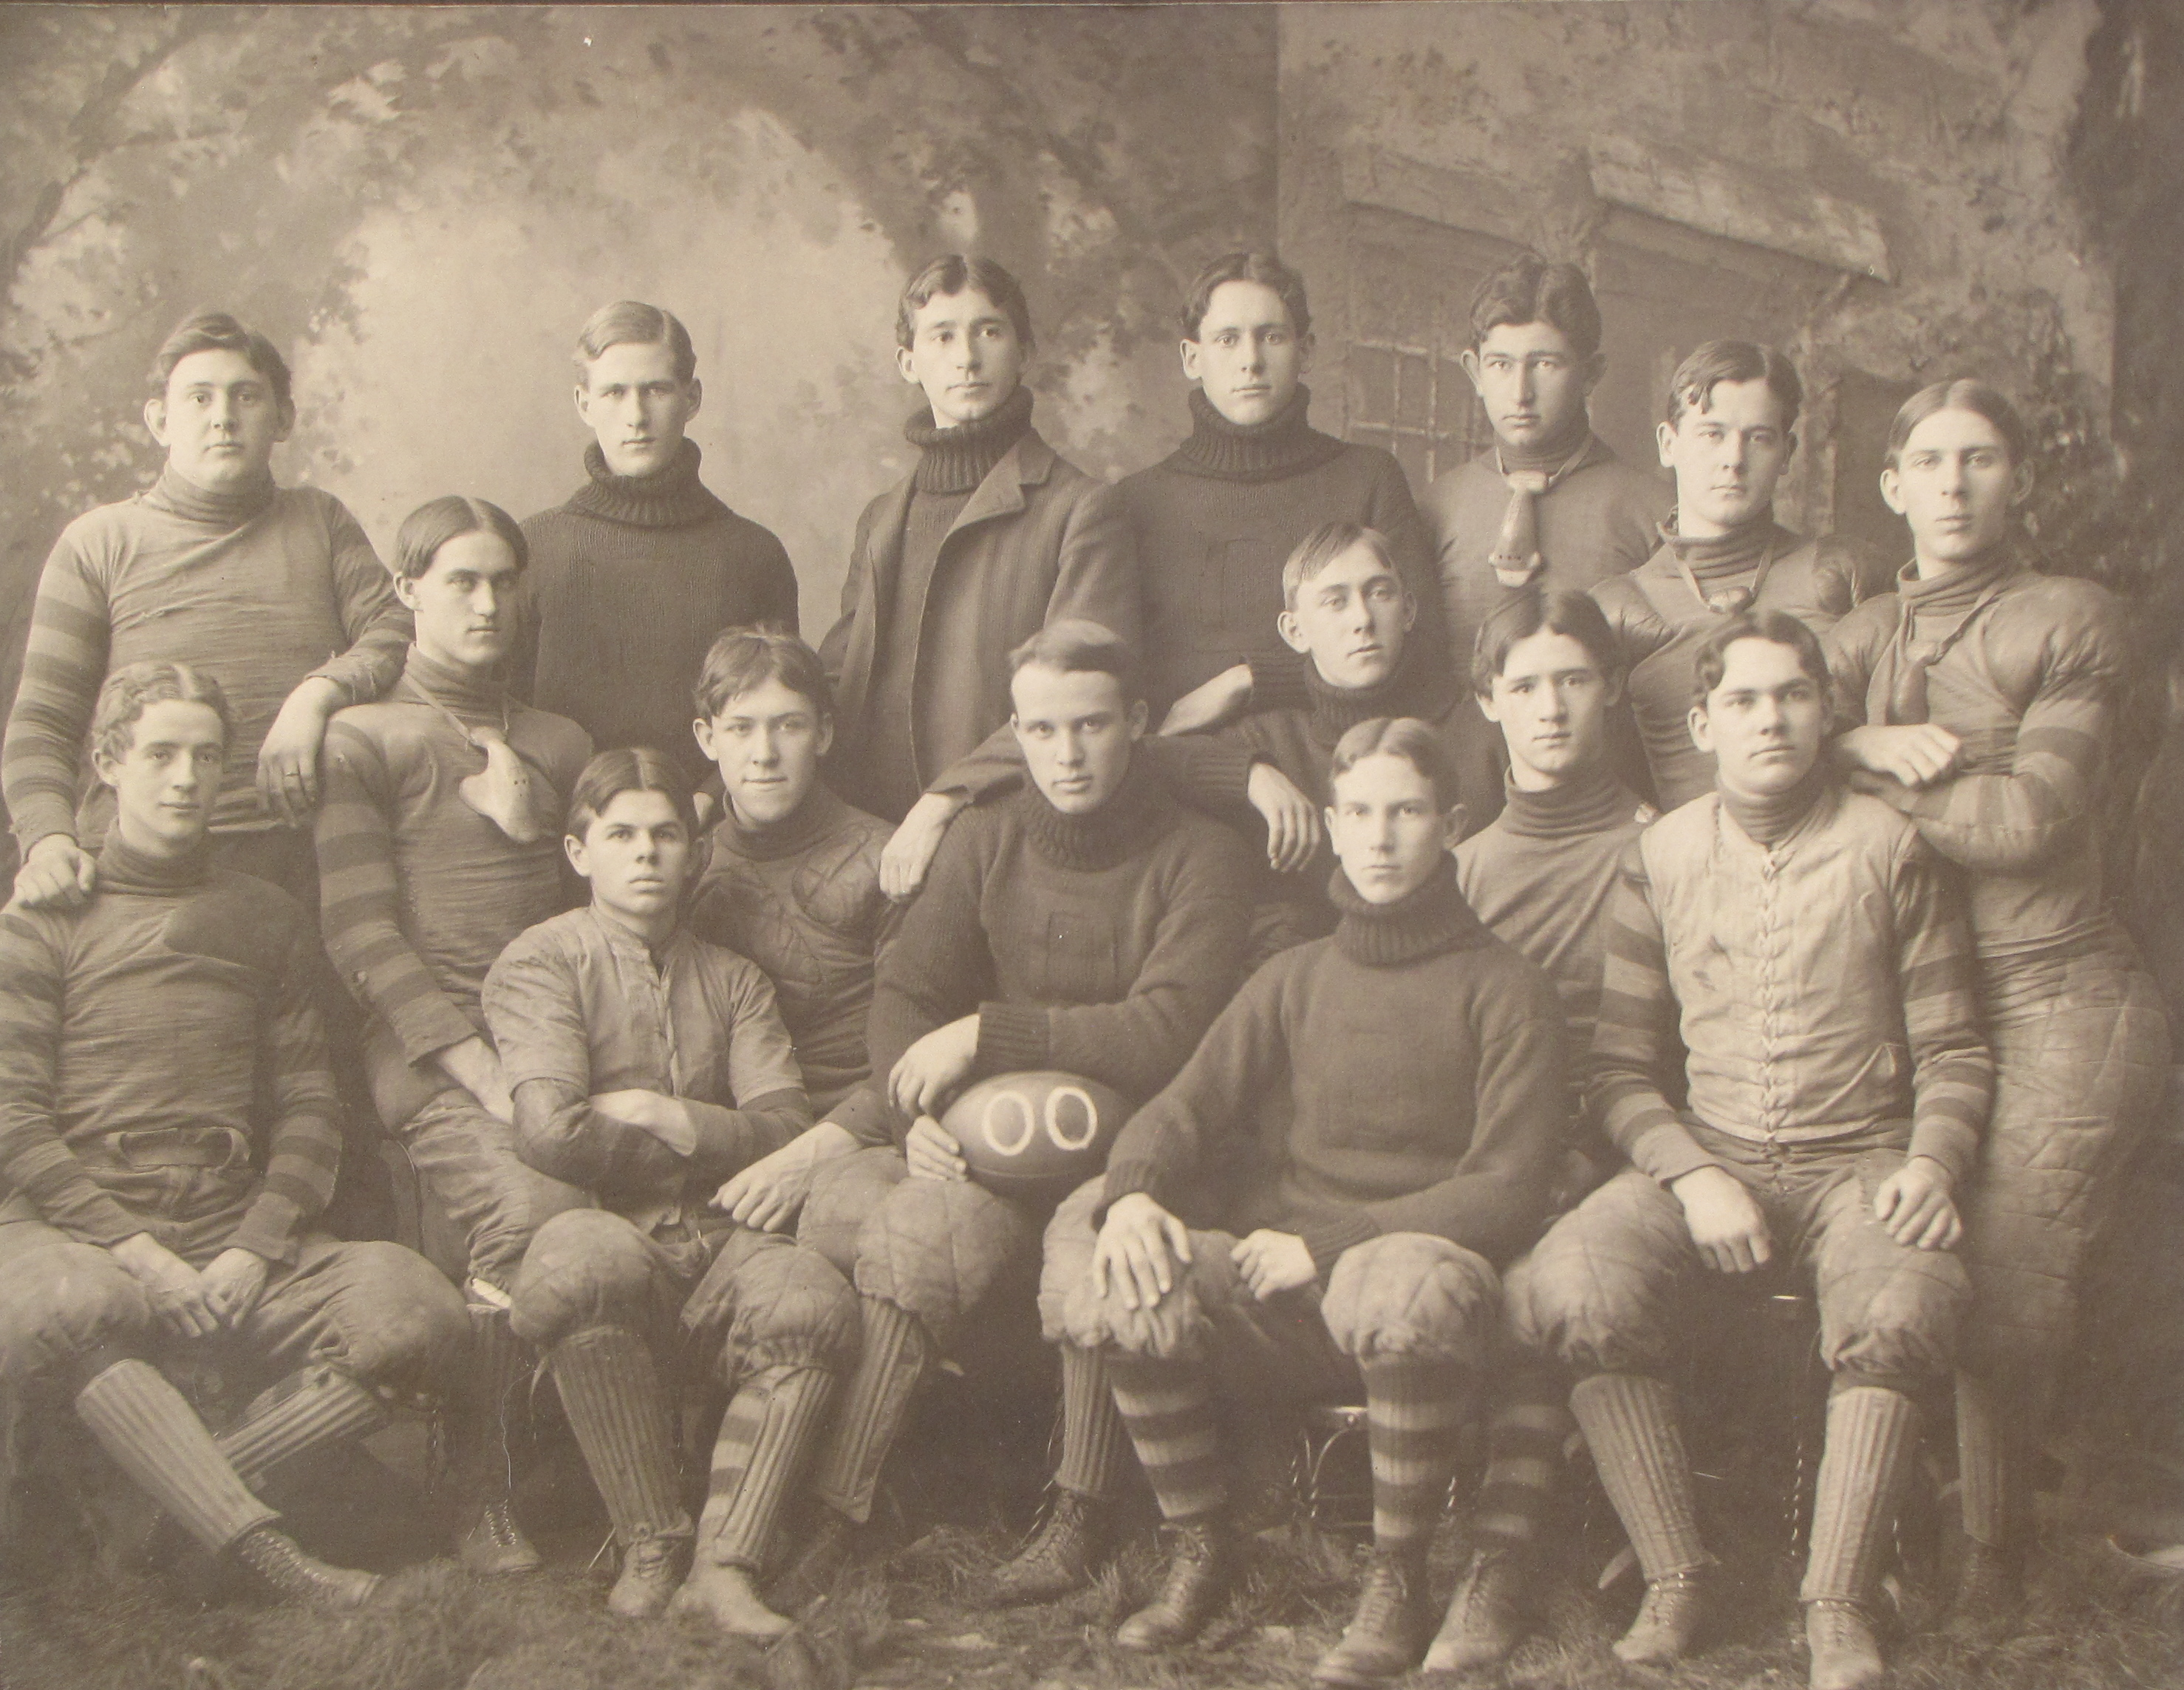 1900 University of Delaware football team, Alger Wheeler Powell front right